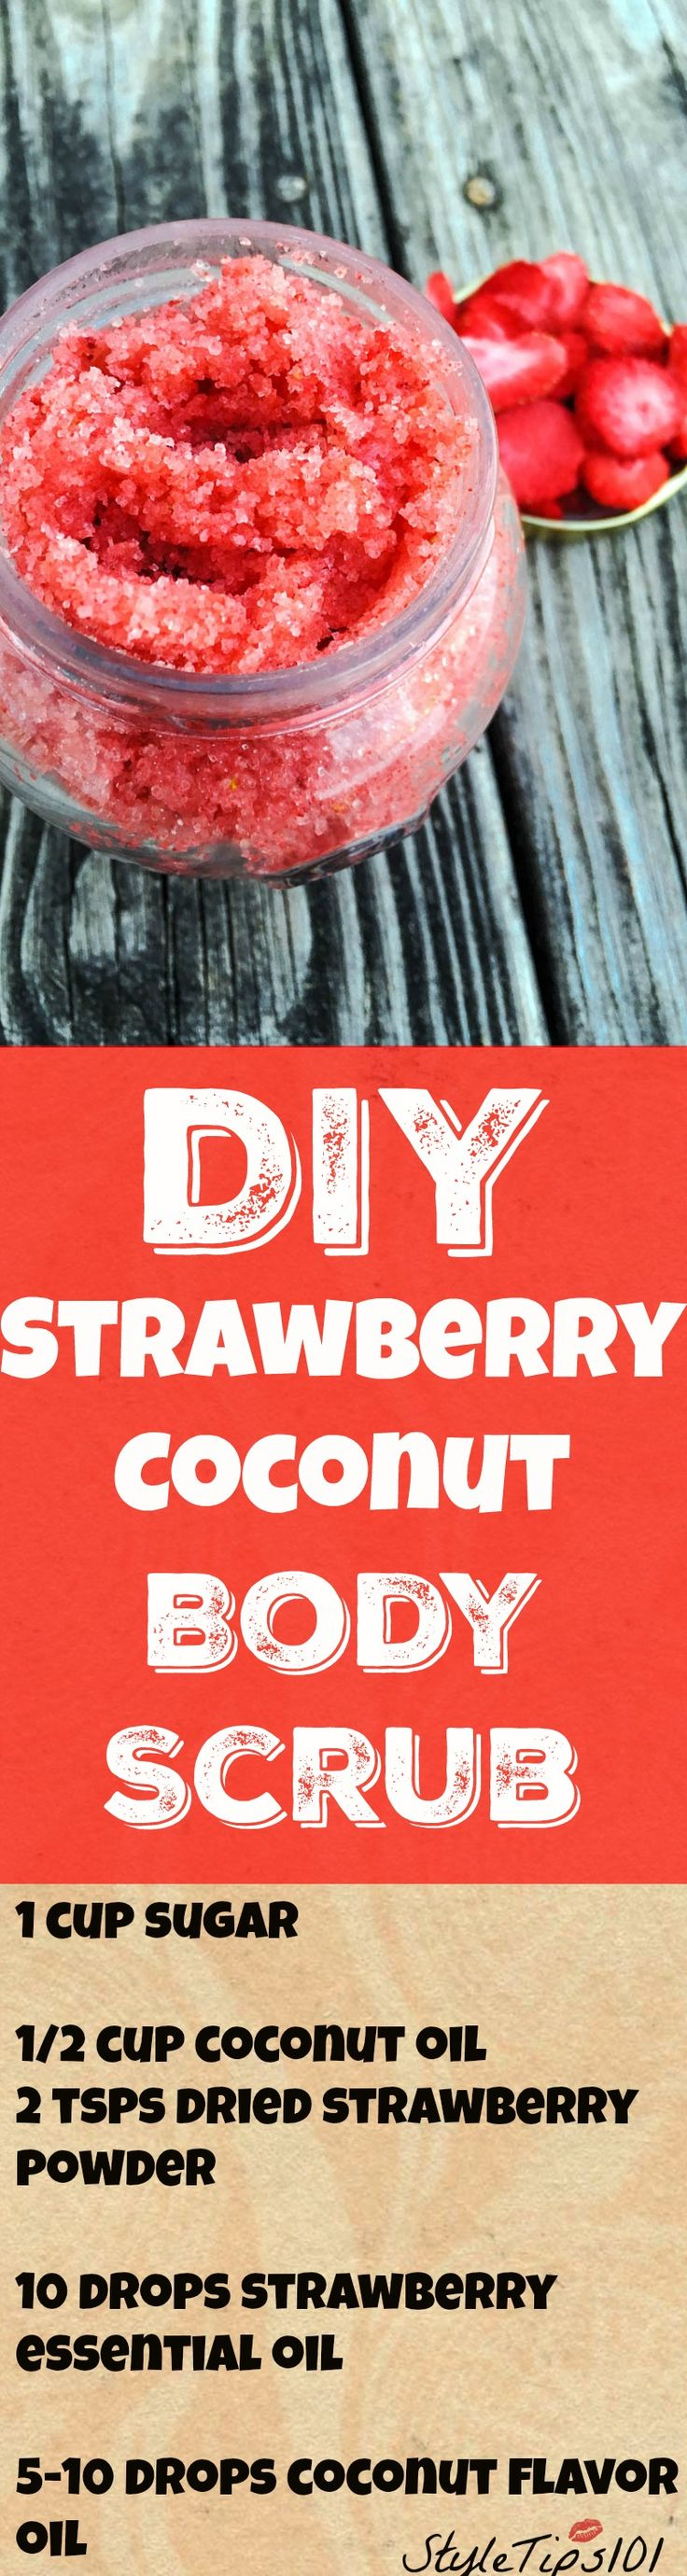 DIY Strawberry Coconut Body Scrub